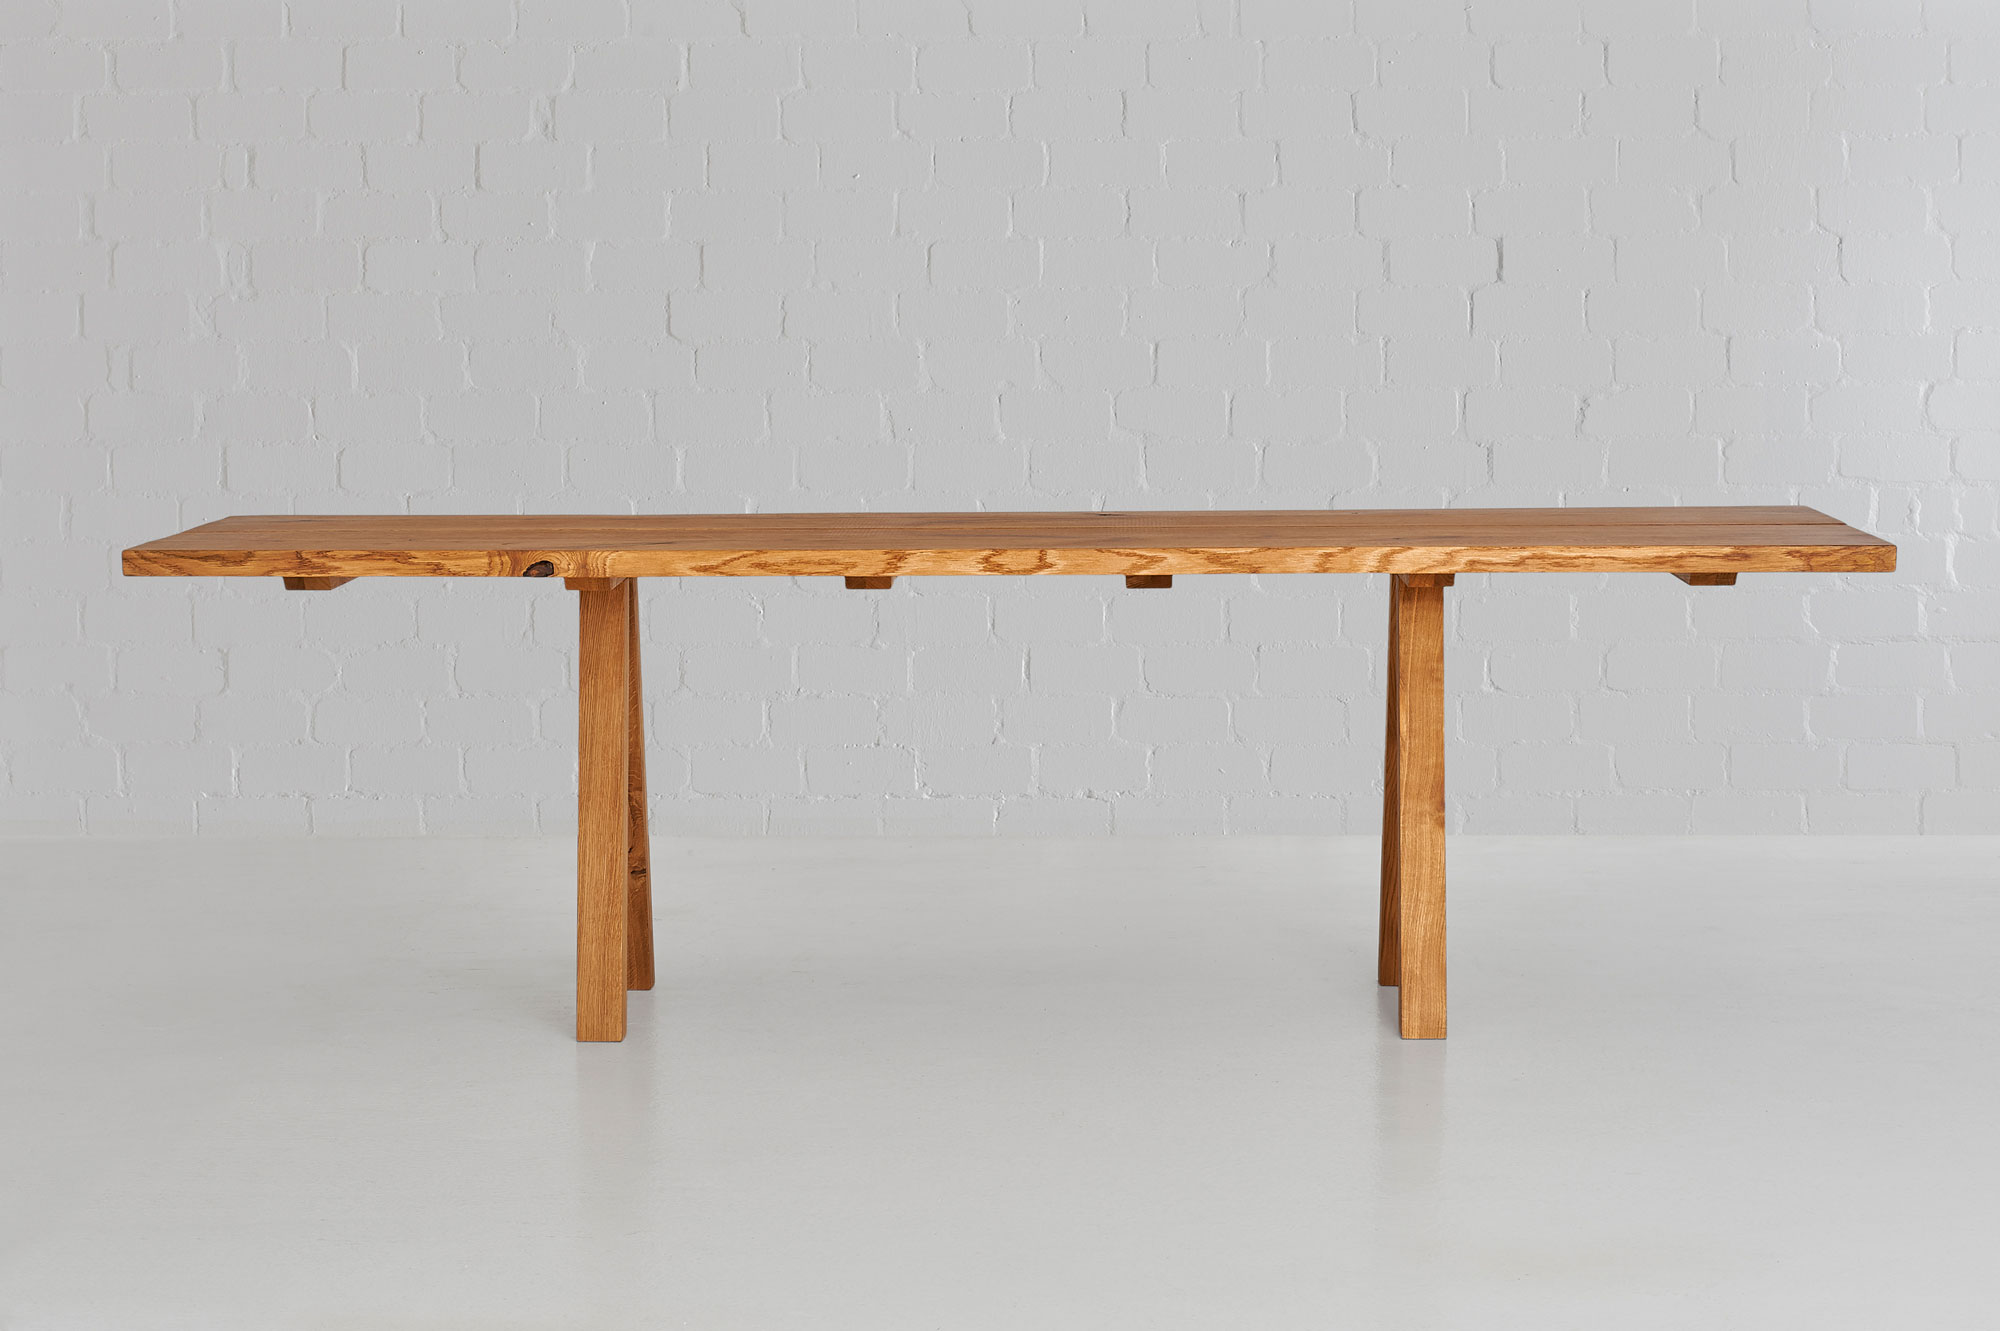 Designer Tree Trunk Table PAPILIO 0475 custom made in solid wood by vitamin design